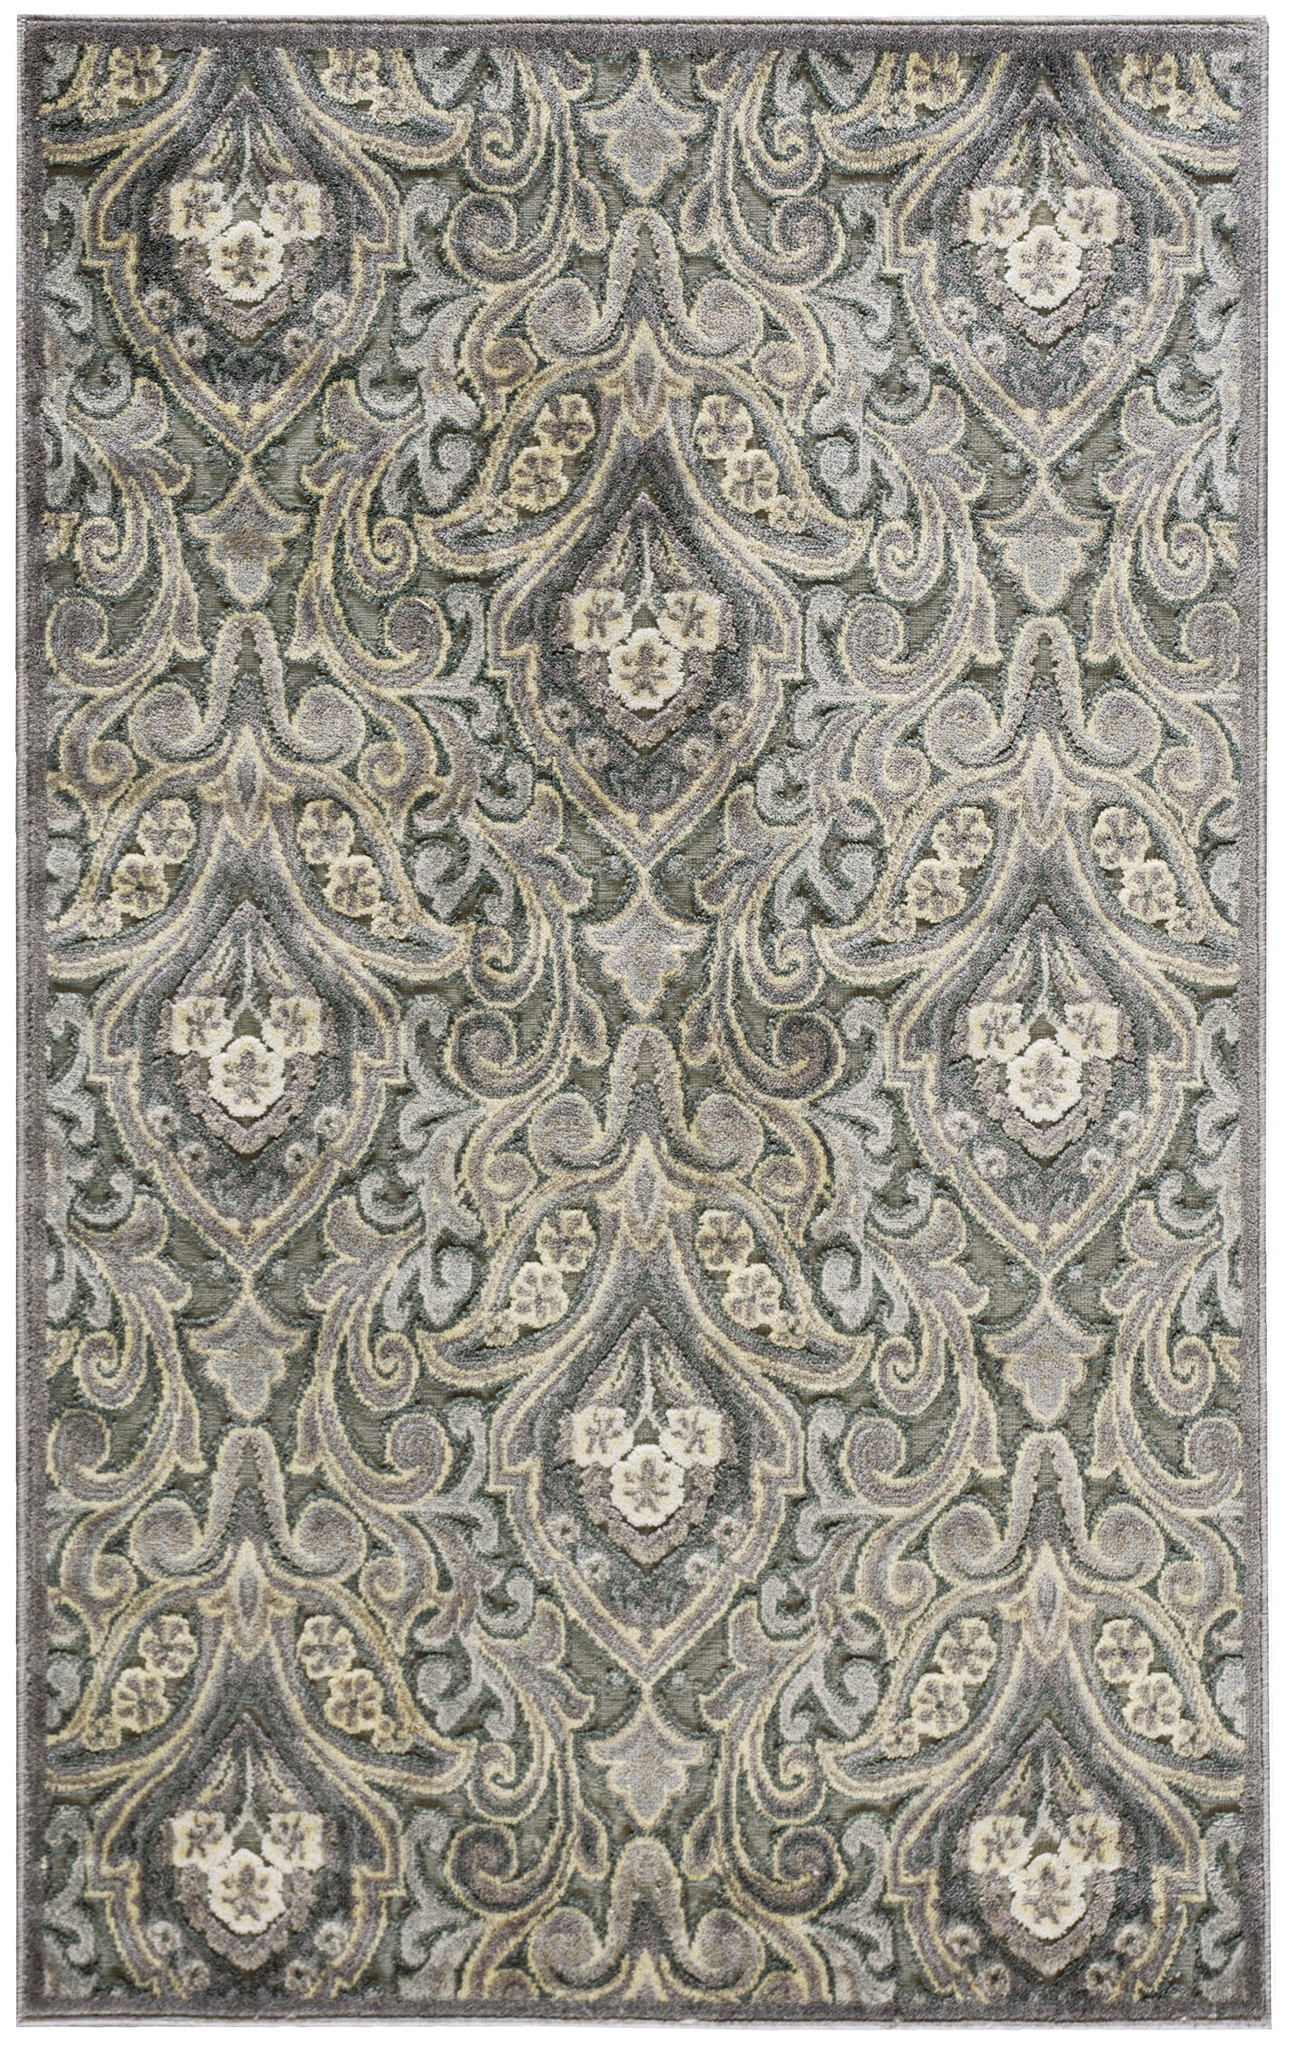 Graphic Illusions Collection Area Rug in Grey Damask design by nourison rugs for floor decor ideas